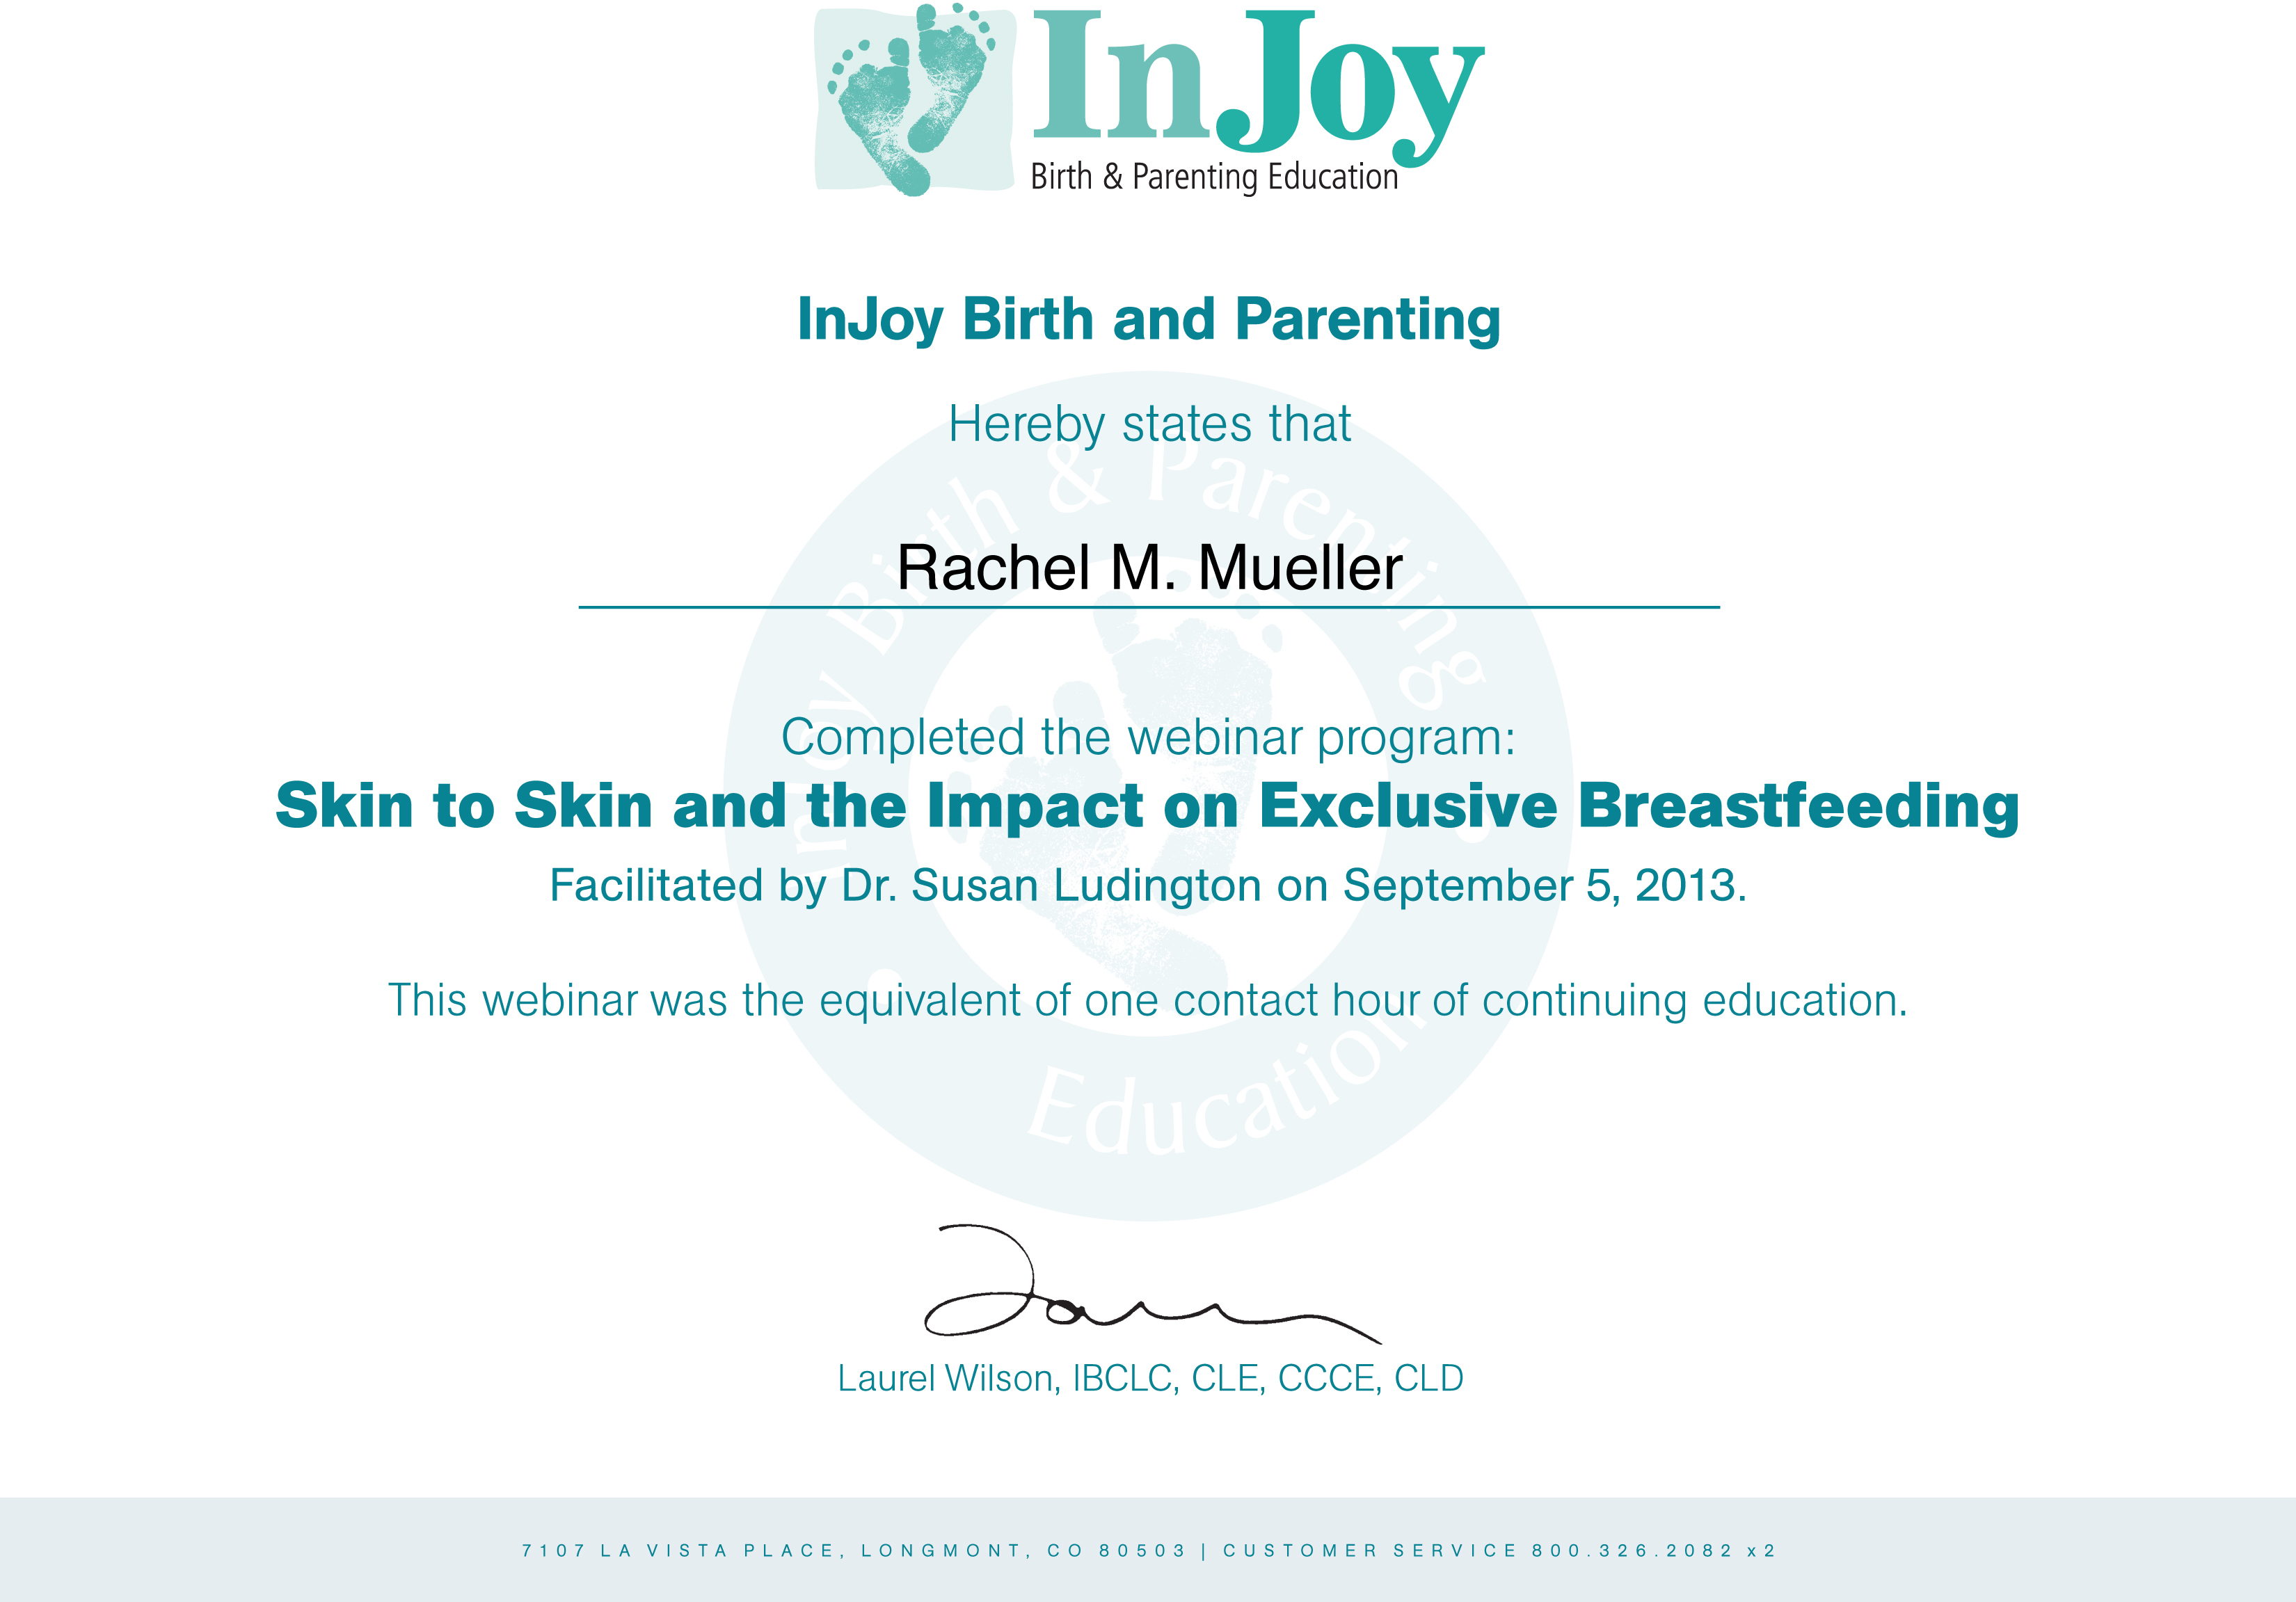 Certification documents near to you midwifery doula certification documents doterrauniversitycert placenta webinarcertskintoskin aiddatafo Image collections